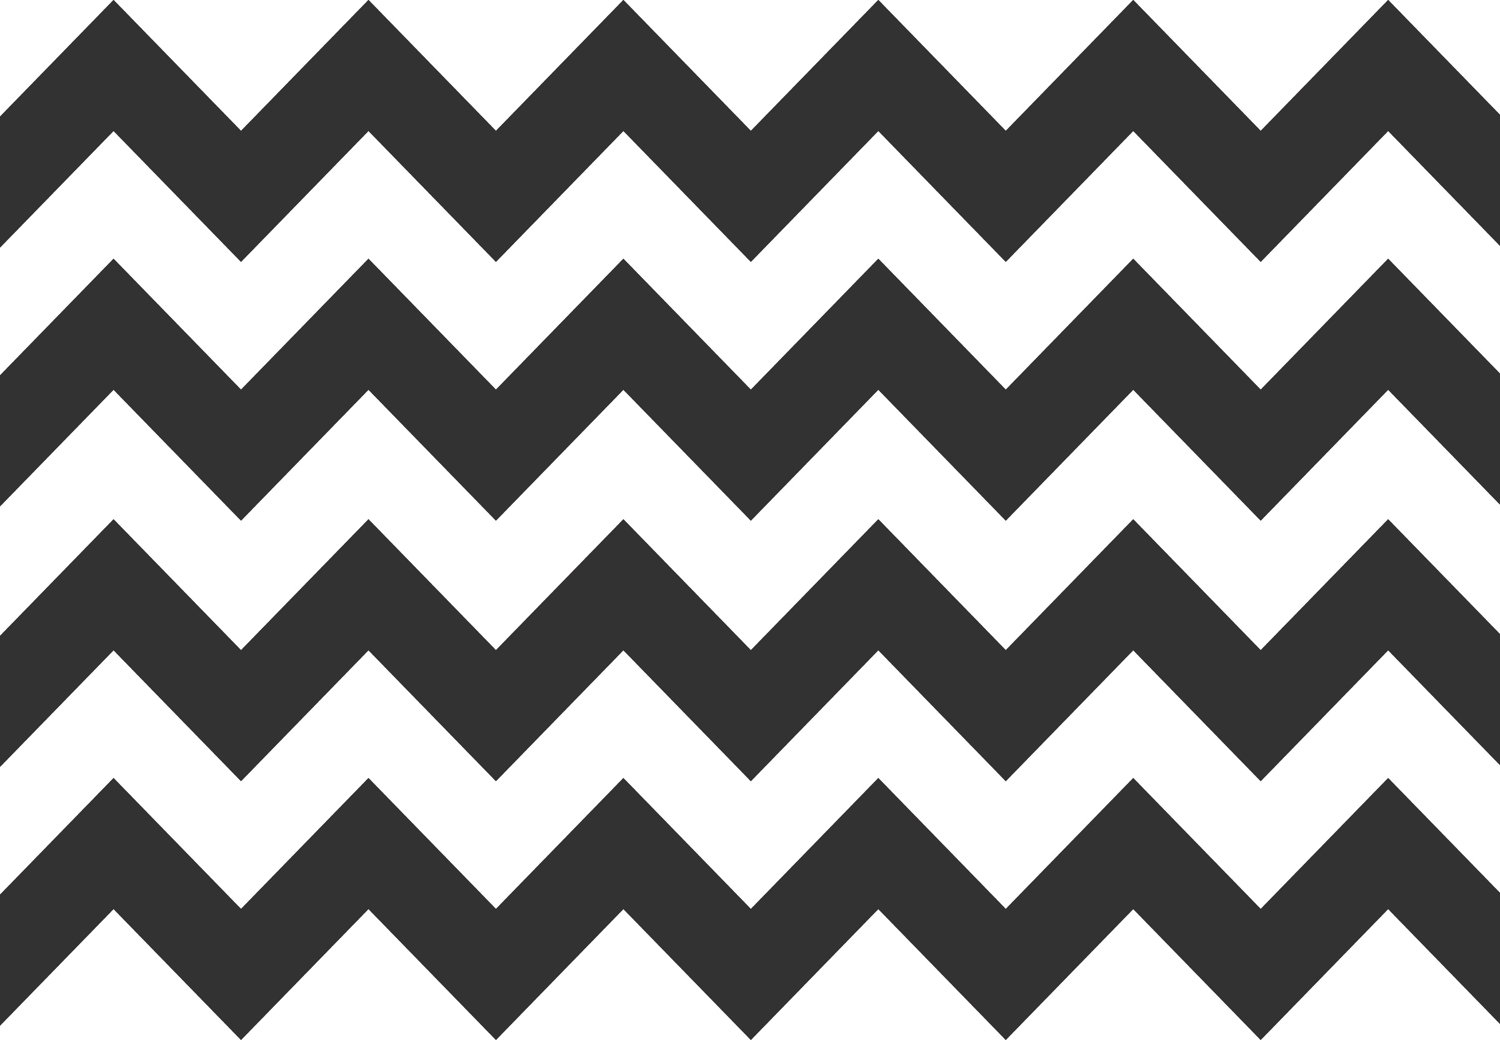 11 Chevron Design Template Images - Printable Chevron Stencil - Chevron Pattern Printable Free